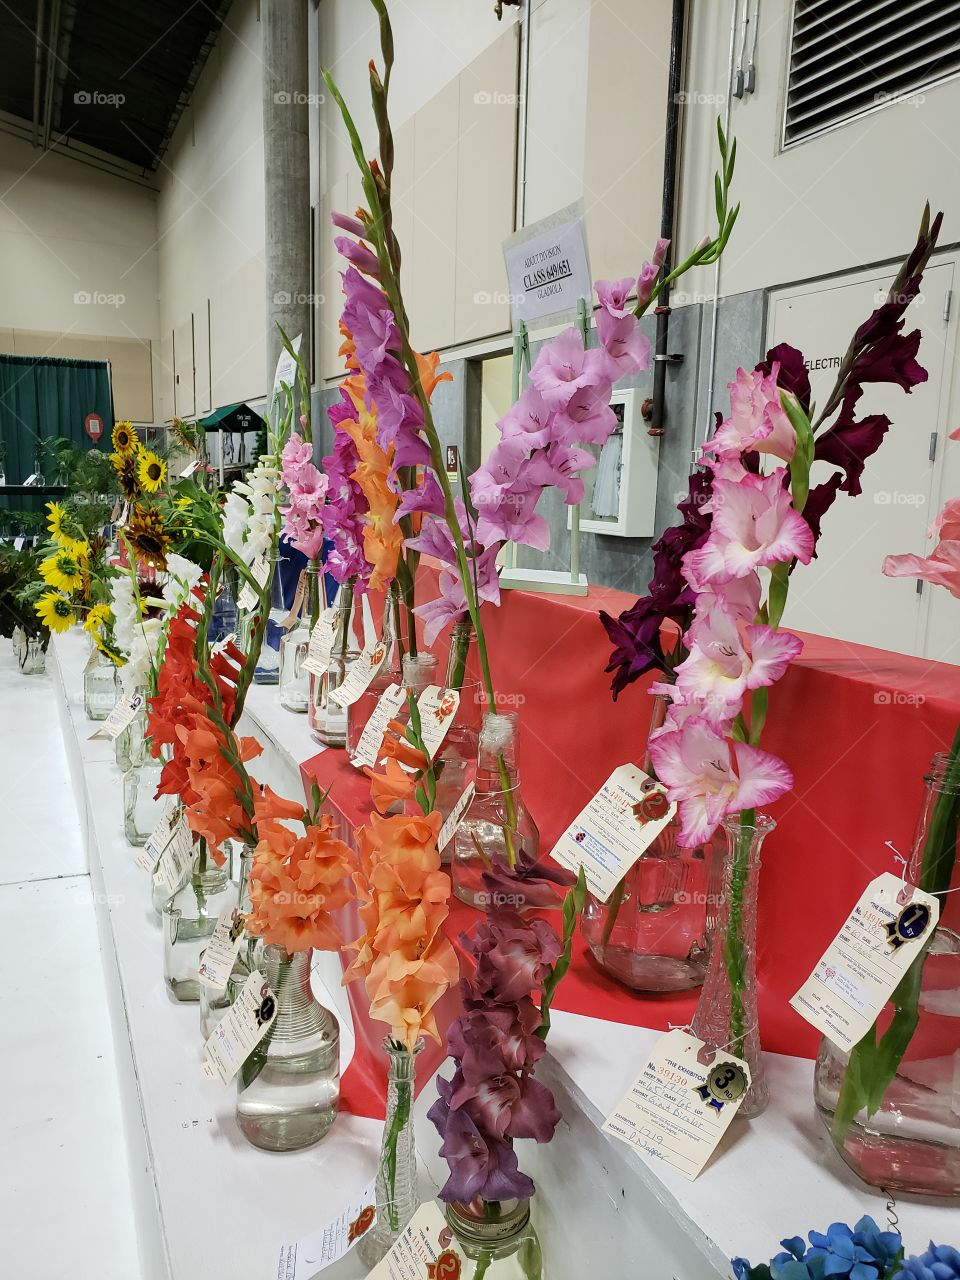 Judged flowers at the fair 3